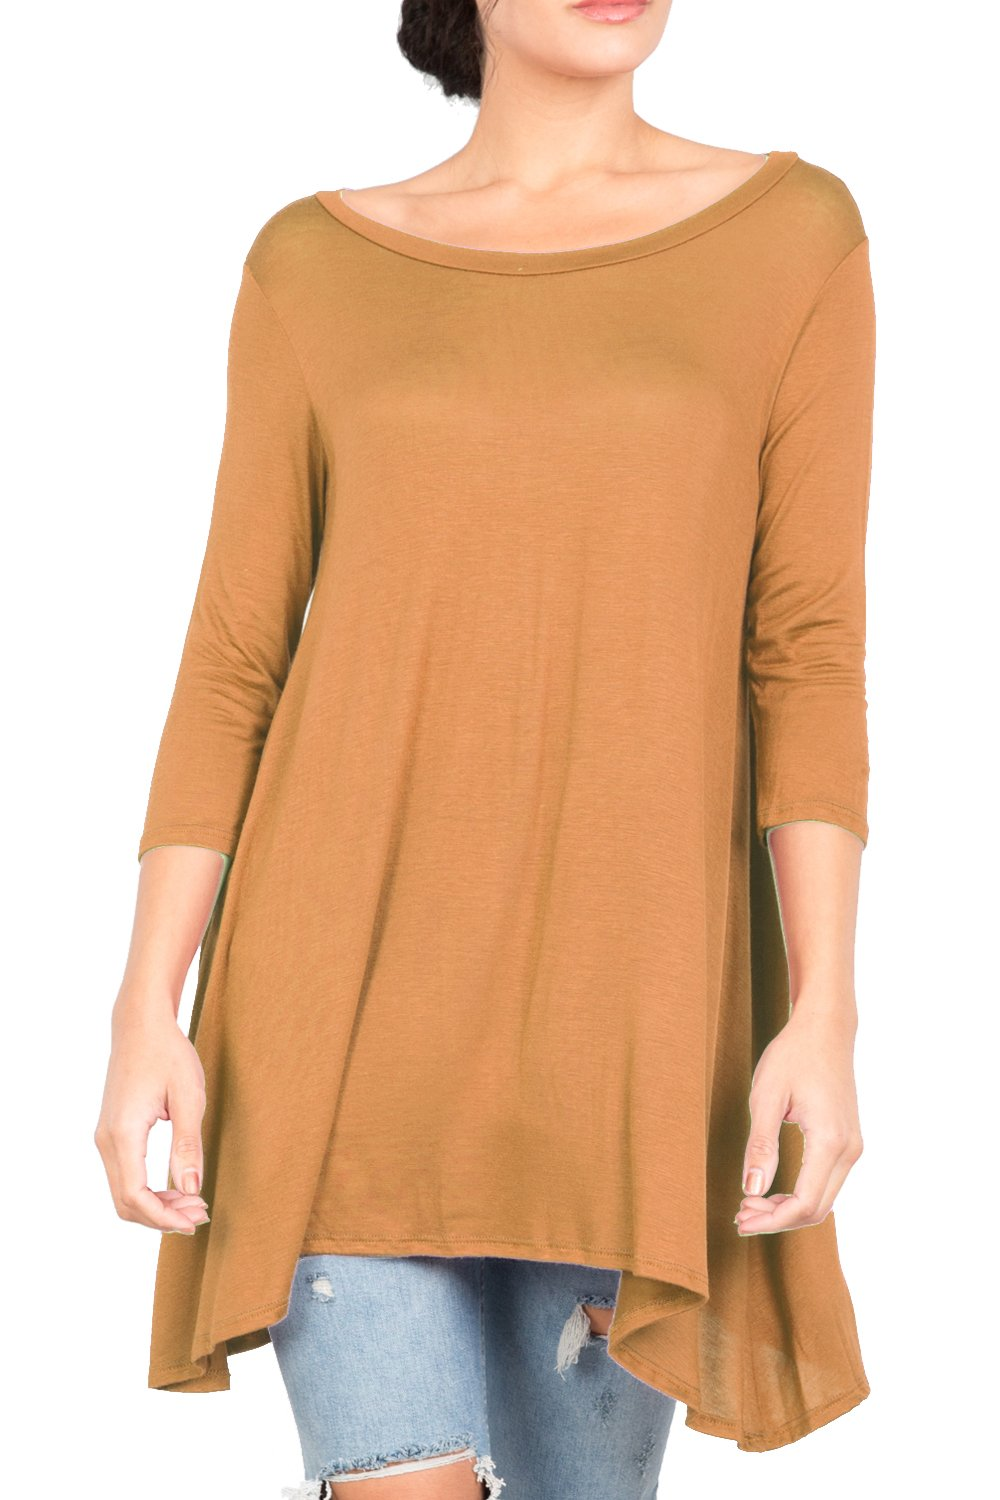 T2411PX 3/4 Sleeve Round Neck Relaxed A-Line Tunic T Shirt Top Camel 2X